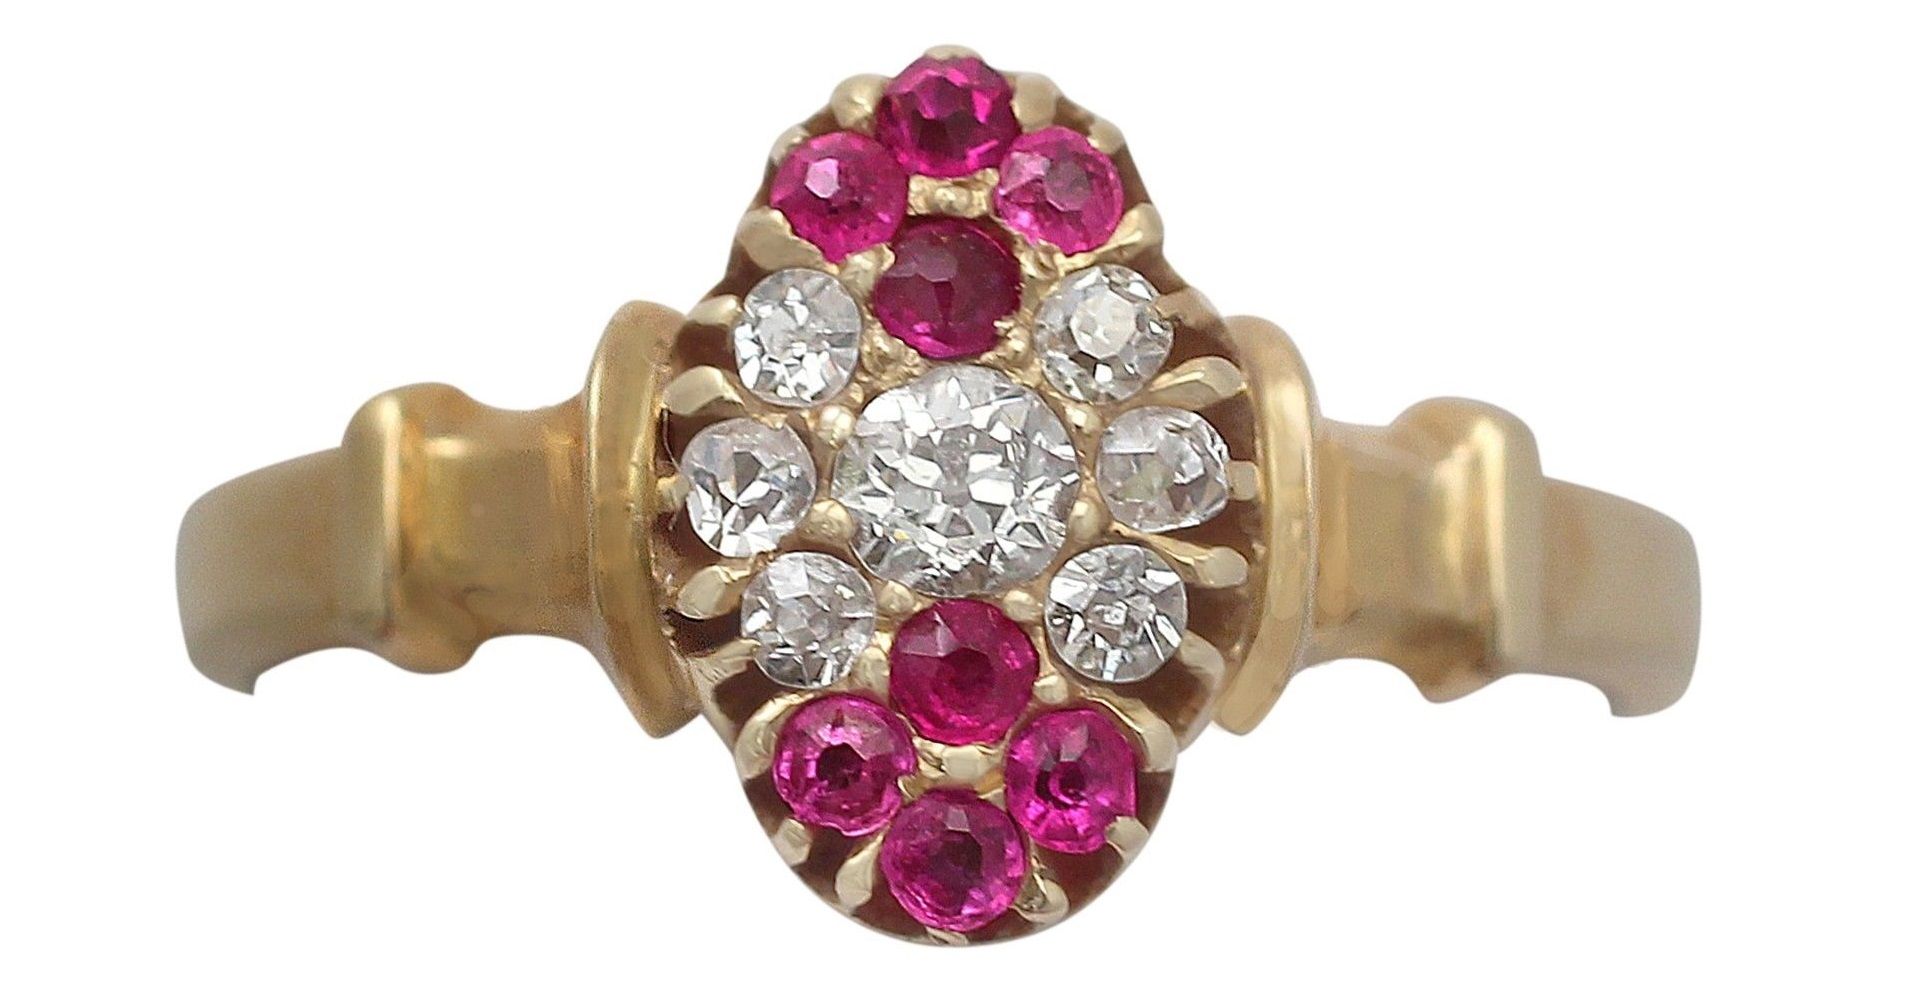 Antique Edwardian, Diamond and Ruby, 18k Yellow Gold Dress Ring - 1905